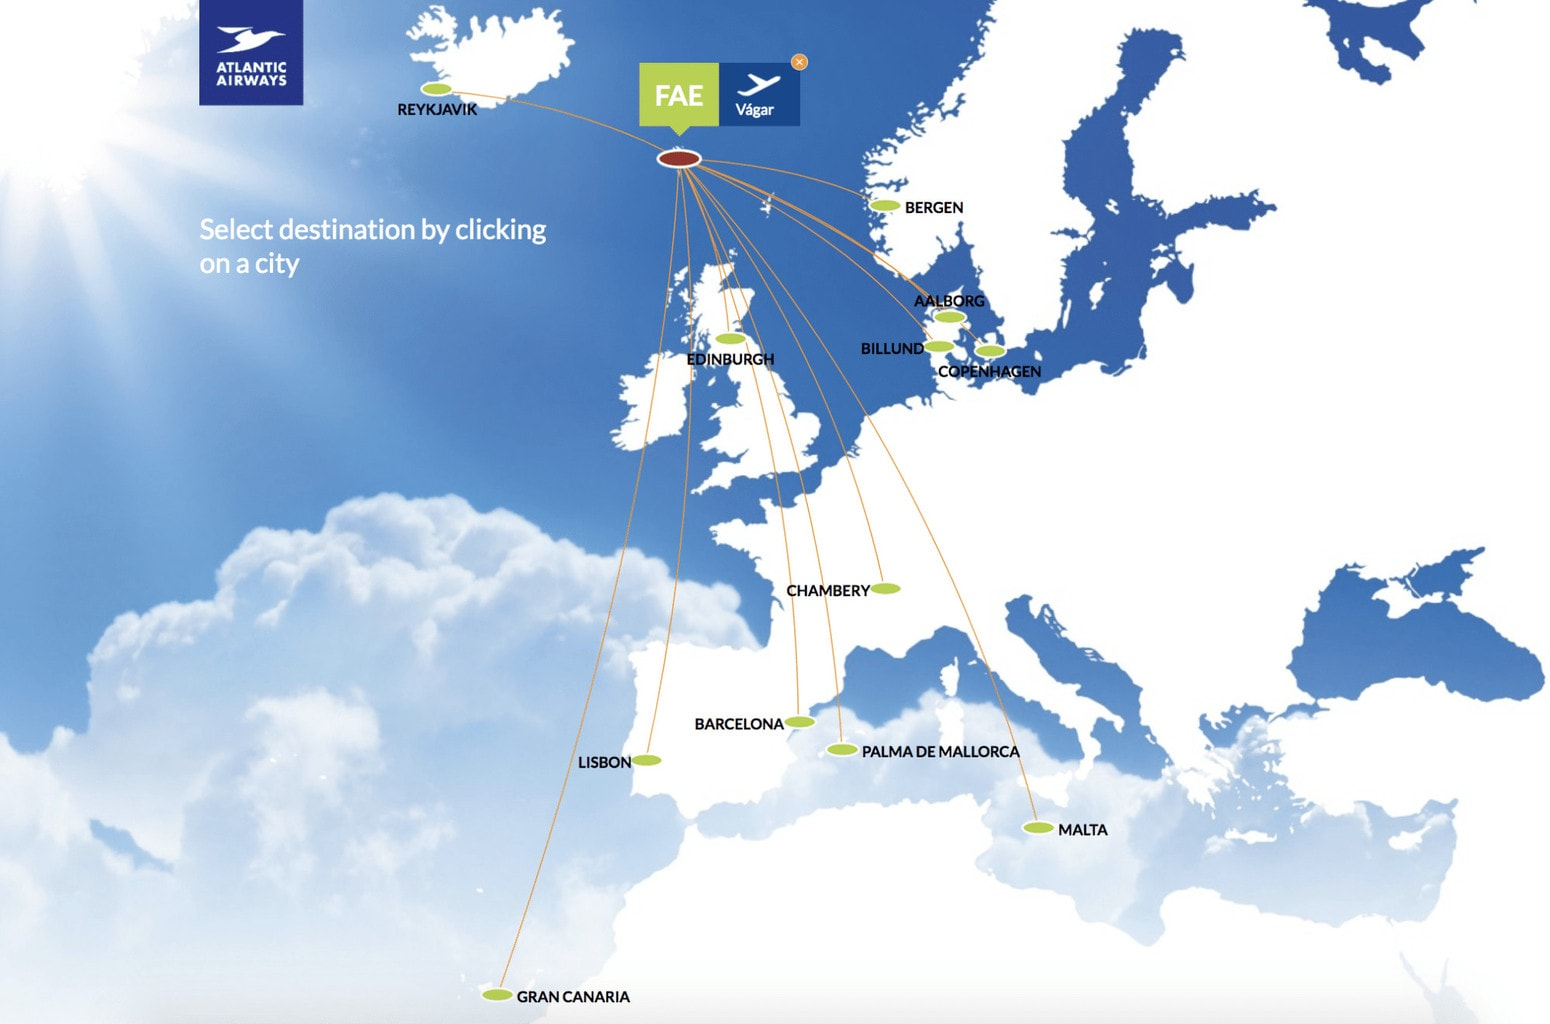 Route map from Atlantic Airways